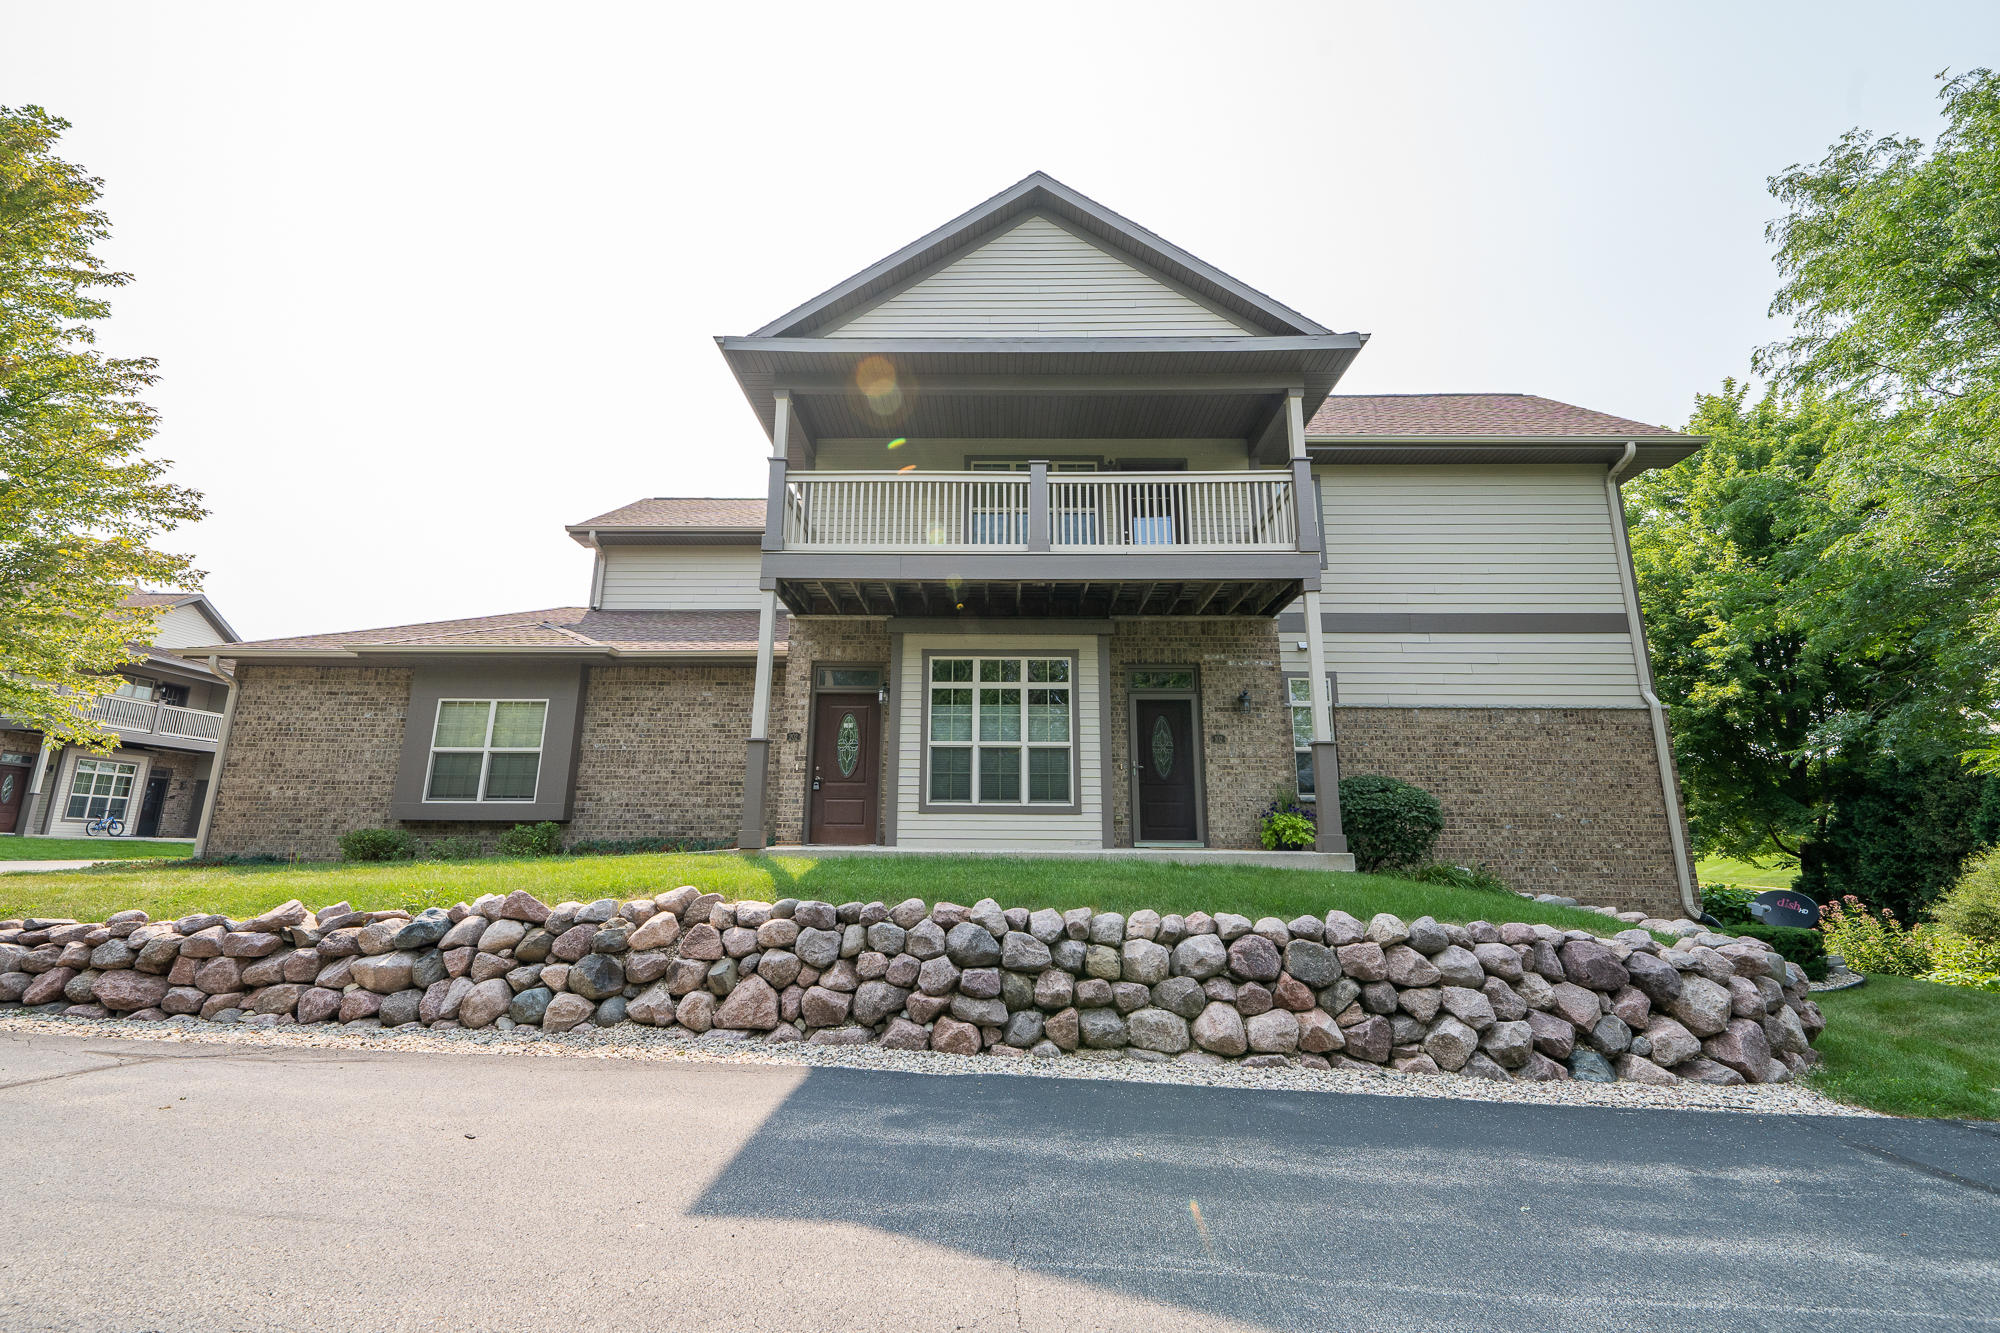 18107 Wisconsin Ave, Brookfield, Wisconsin 53045, 3 Bedrooms Bedrooms, 6 Rooms Rooms,2 BathroomsBathrooms,Condominiums,For Sale,Wisconsin Ave,2,1753690